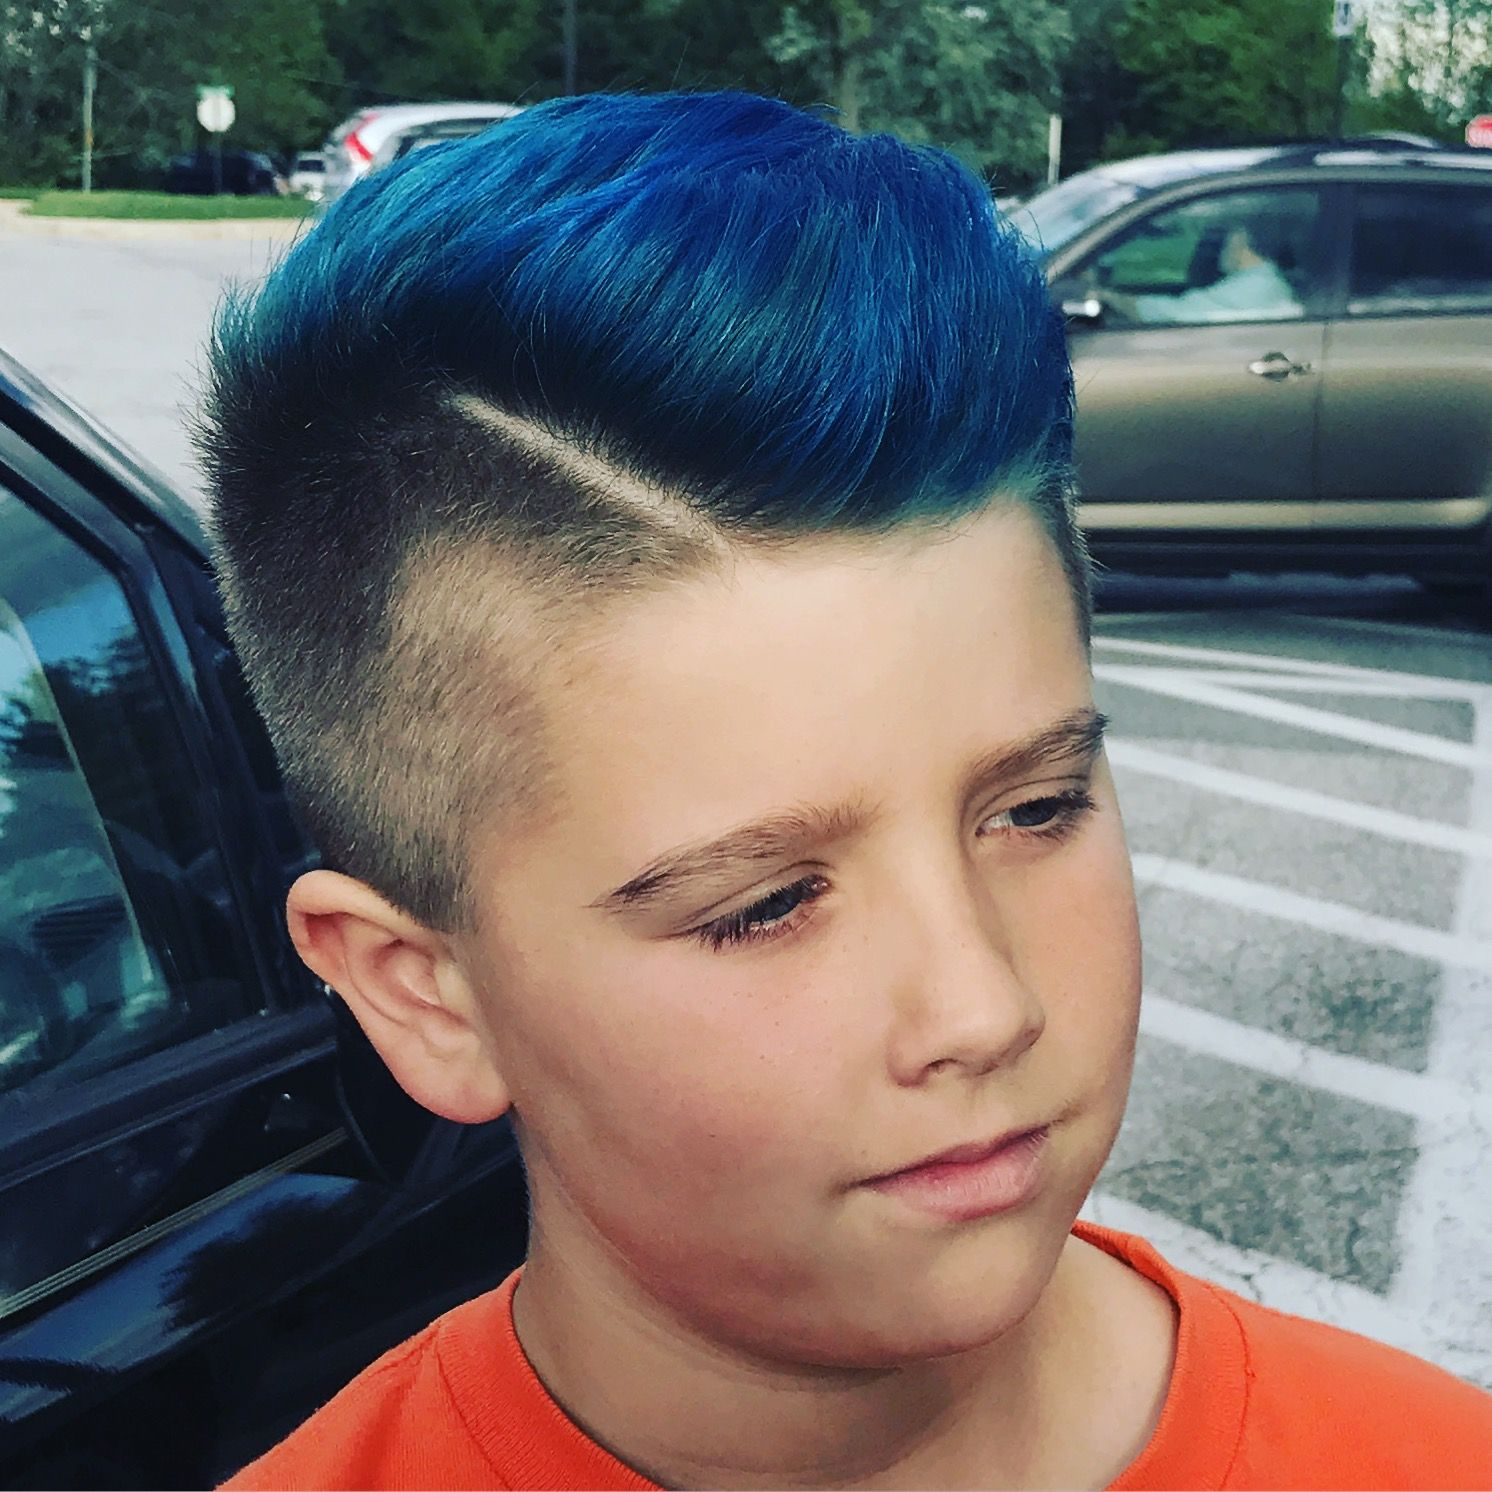 Boys Blue Hair Jmaries Salon Jmariessalon Hair Highlights Haircut Haircolor Goldwell Goldwellusa Eld Boys Blue Hair Men Hair Color Boys Colored Hair